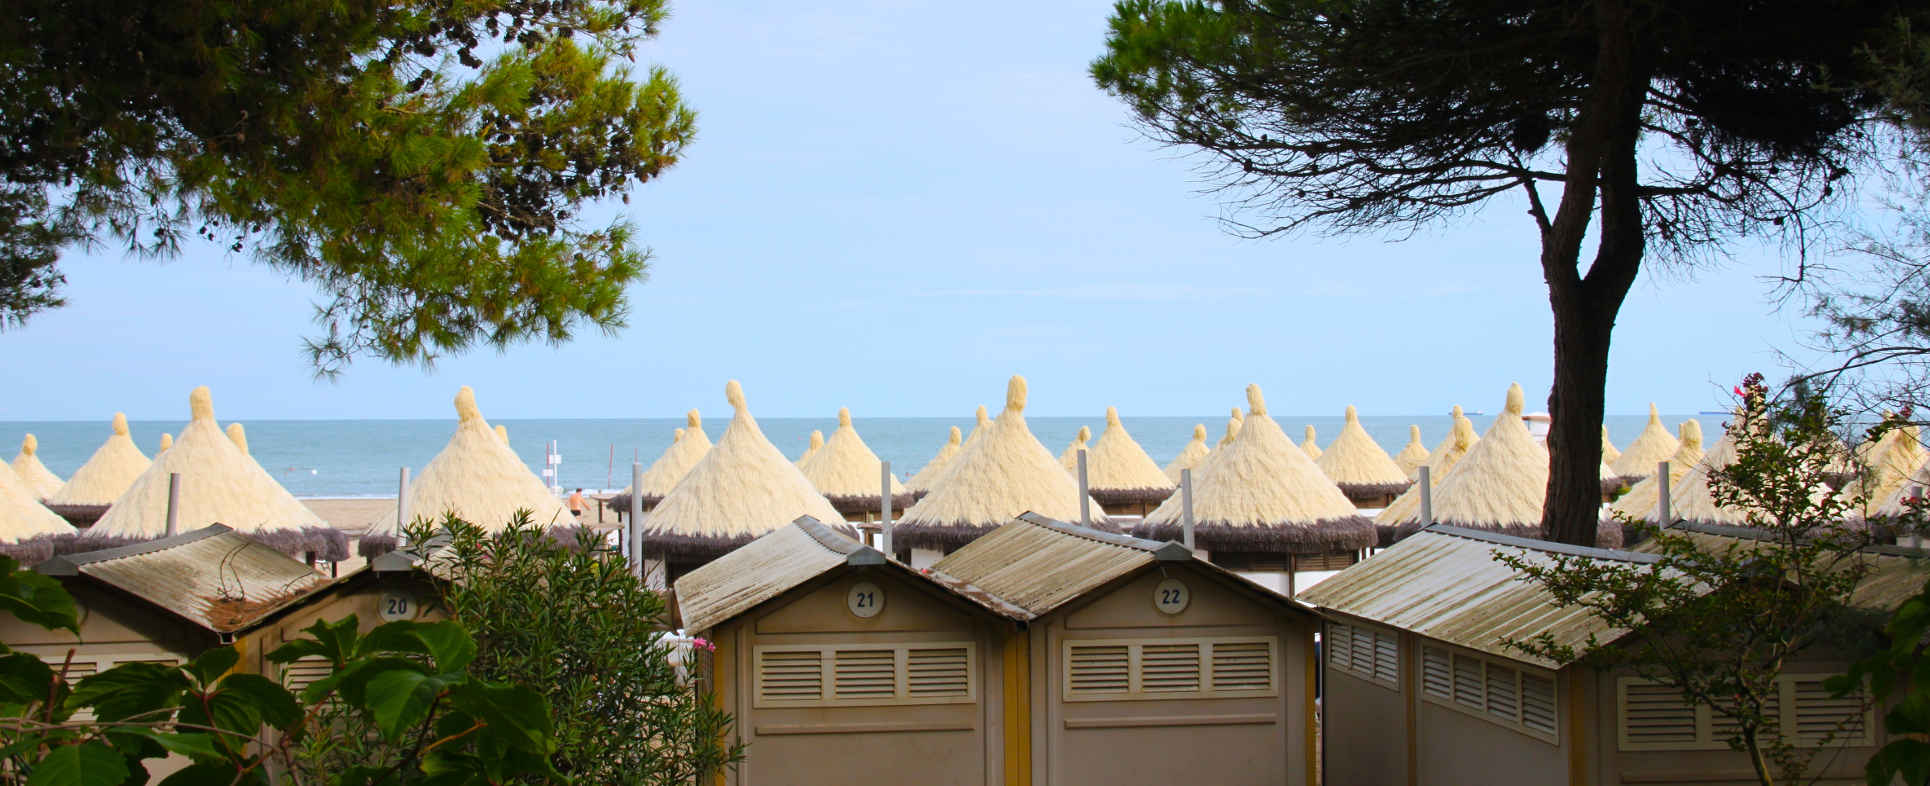 huts on the lido venice 'beach